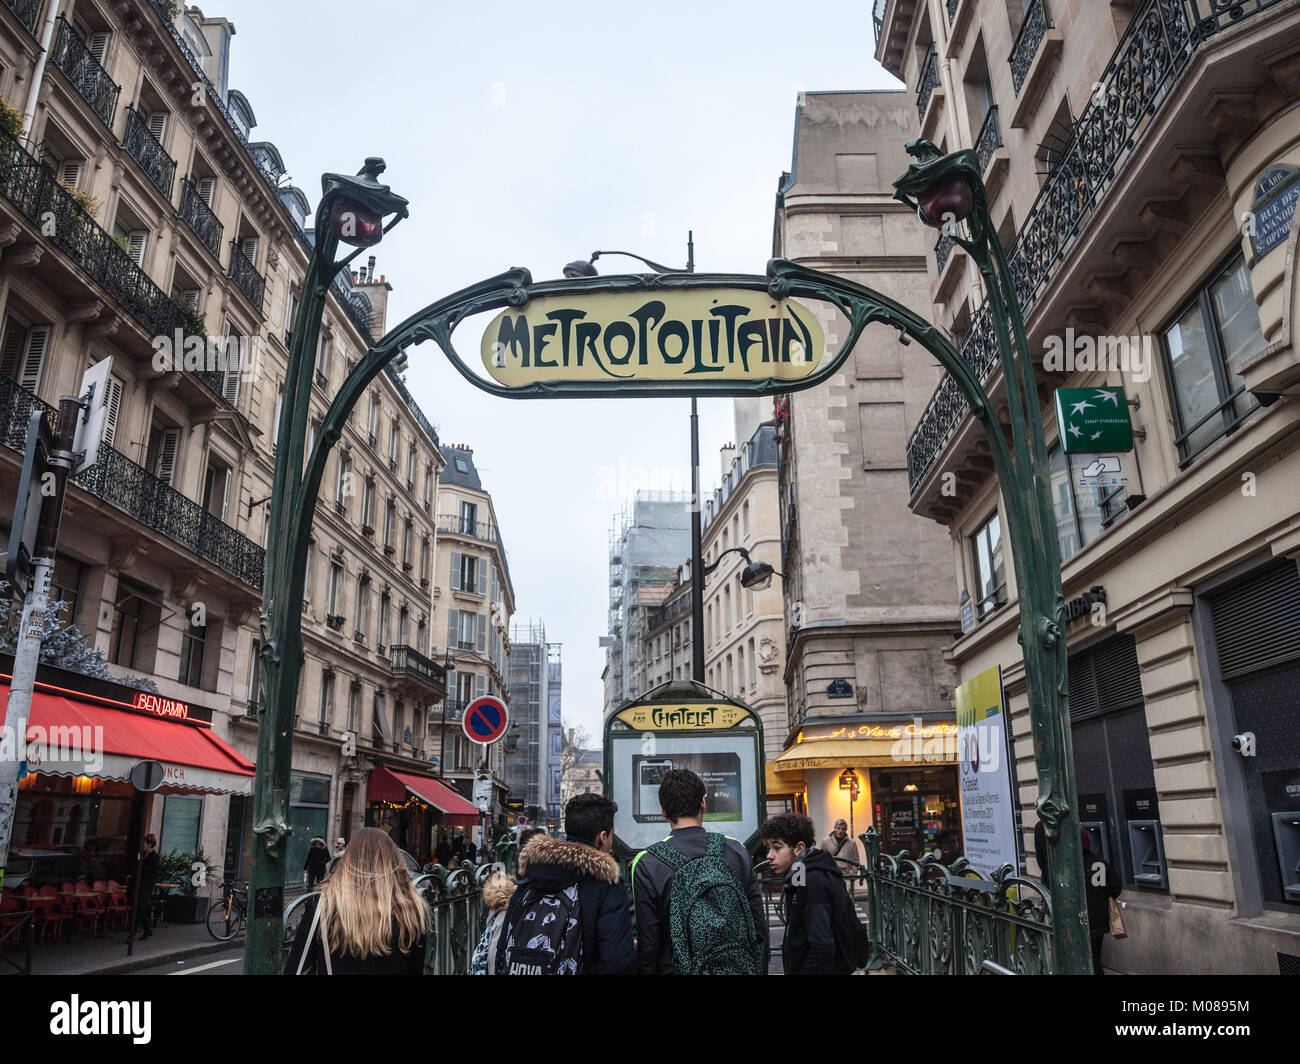 PARIS, FRANCE - DECEMBER 20, 2017: Paris Metro Station in Chatelet with a typical art deco Metro sign designed by - Stock Image